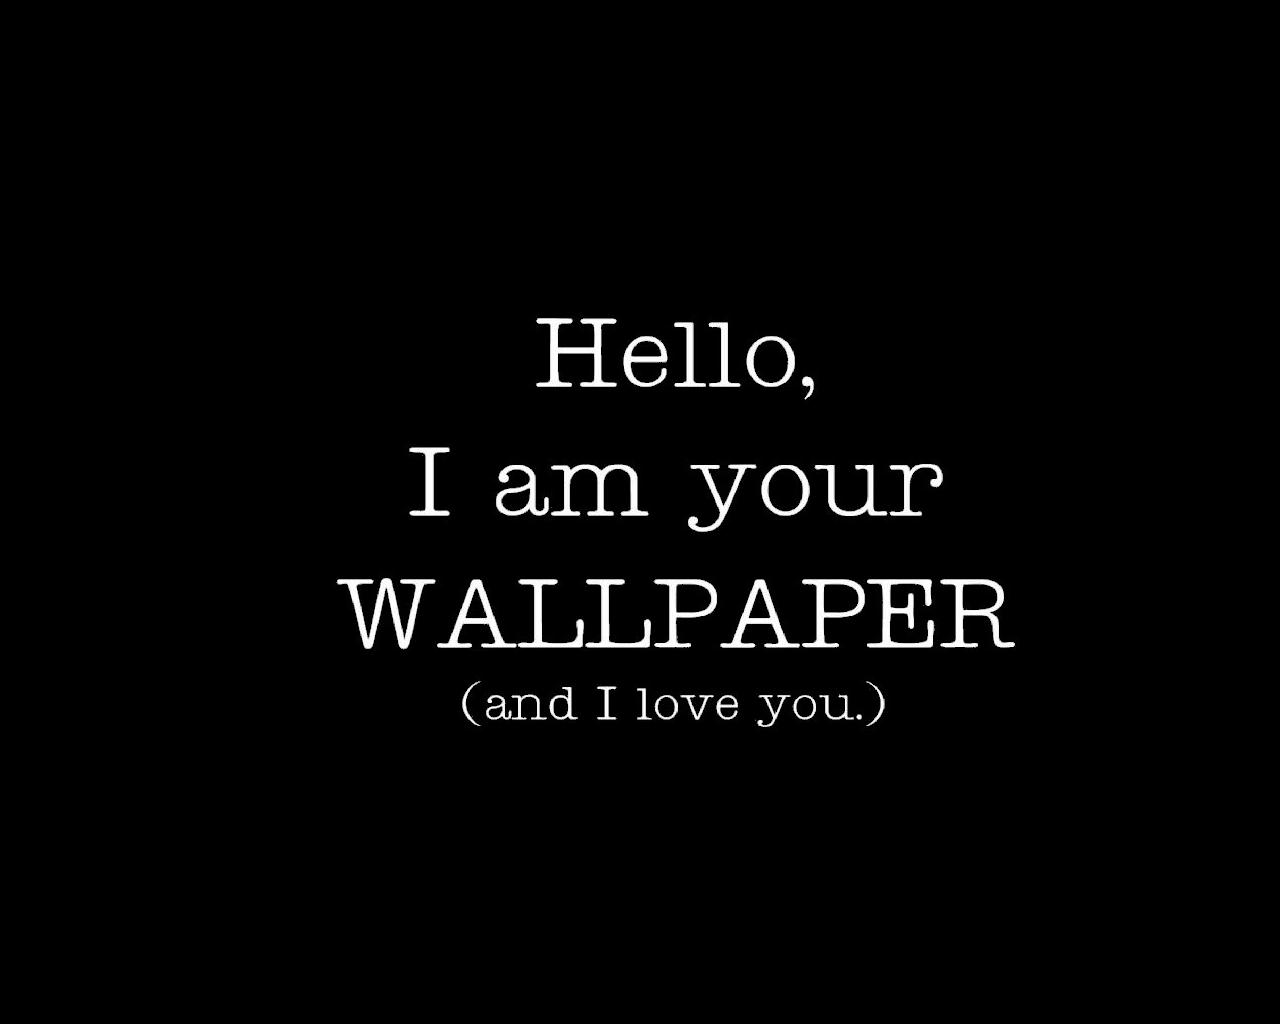 Some Funny Hd Wallpaprs Backgrounds High Quality All Hd Wallpapers